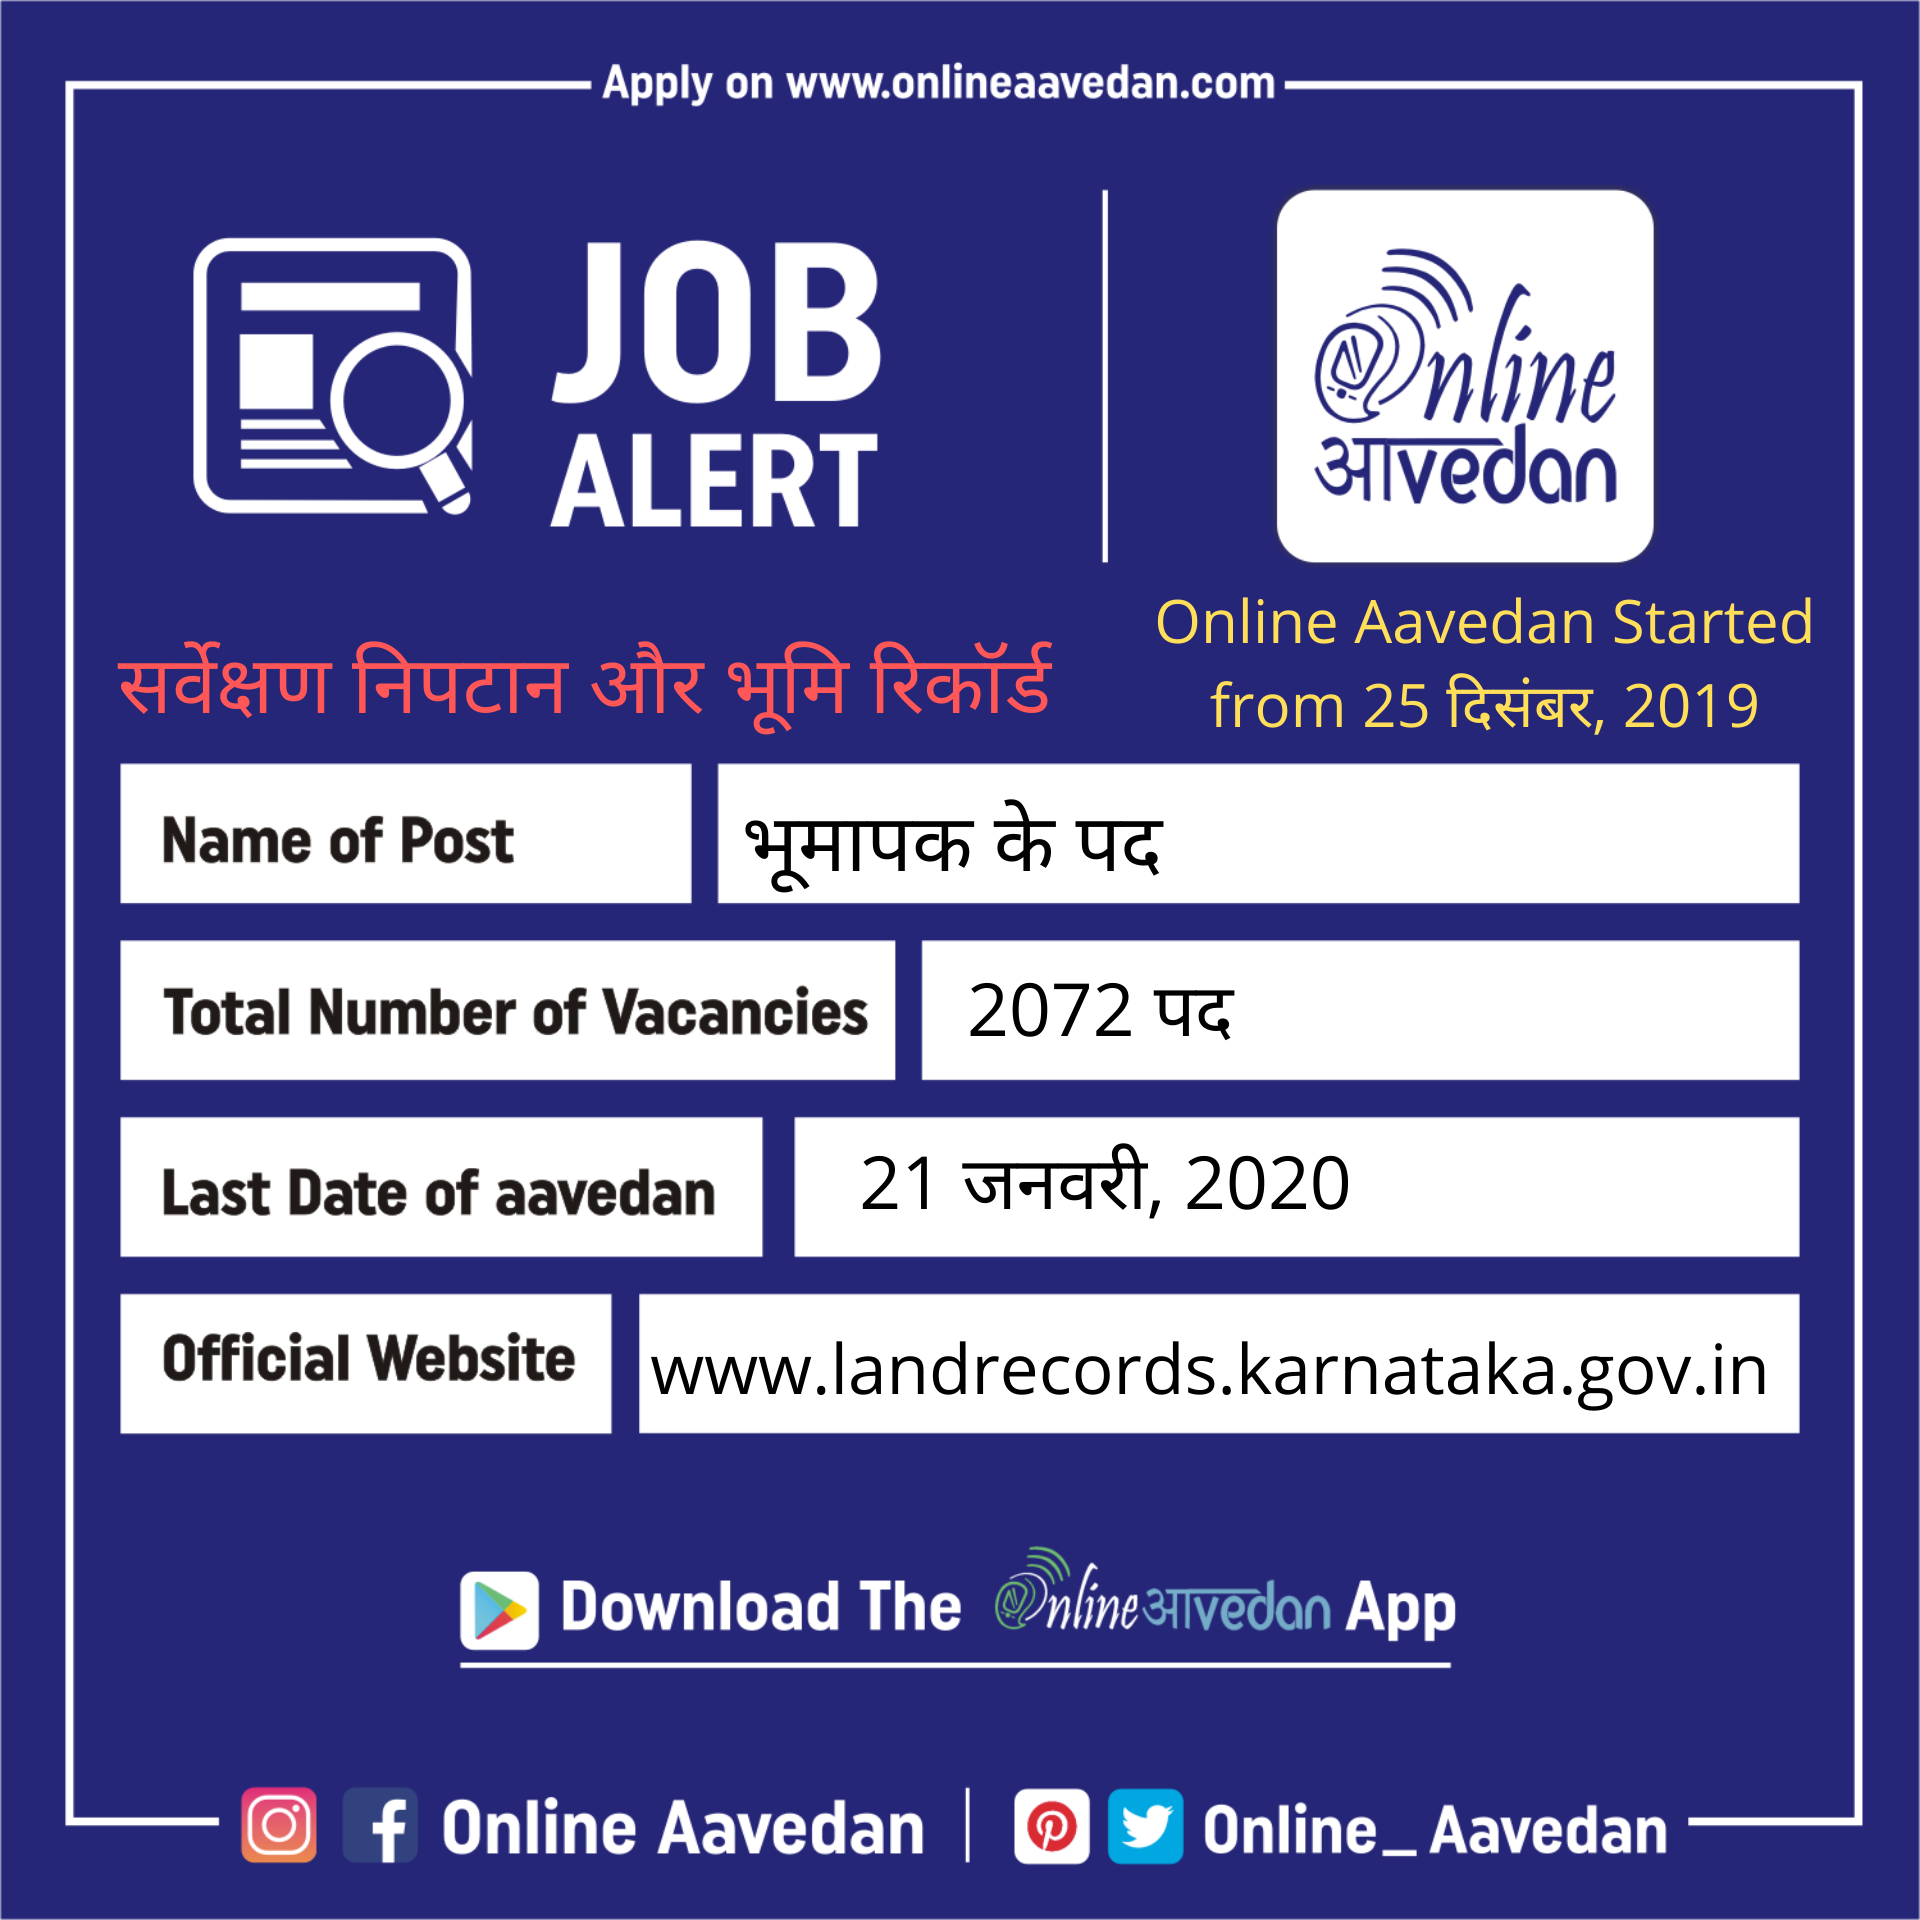 Survey Settlement And Land Records Recruitment For The Post Of